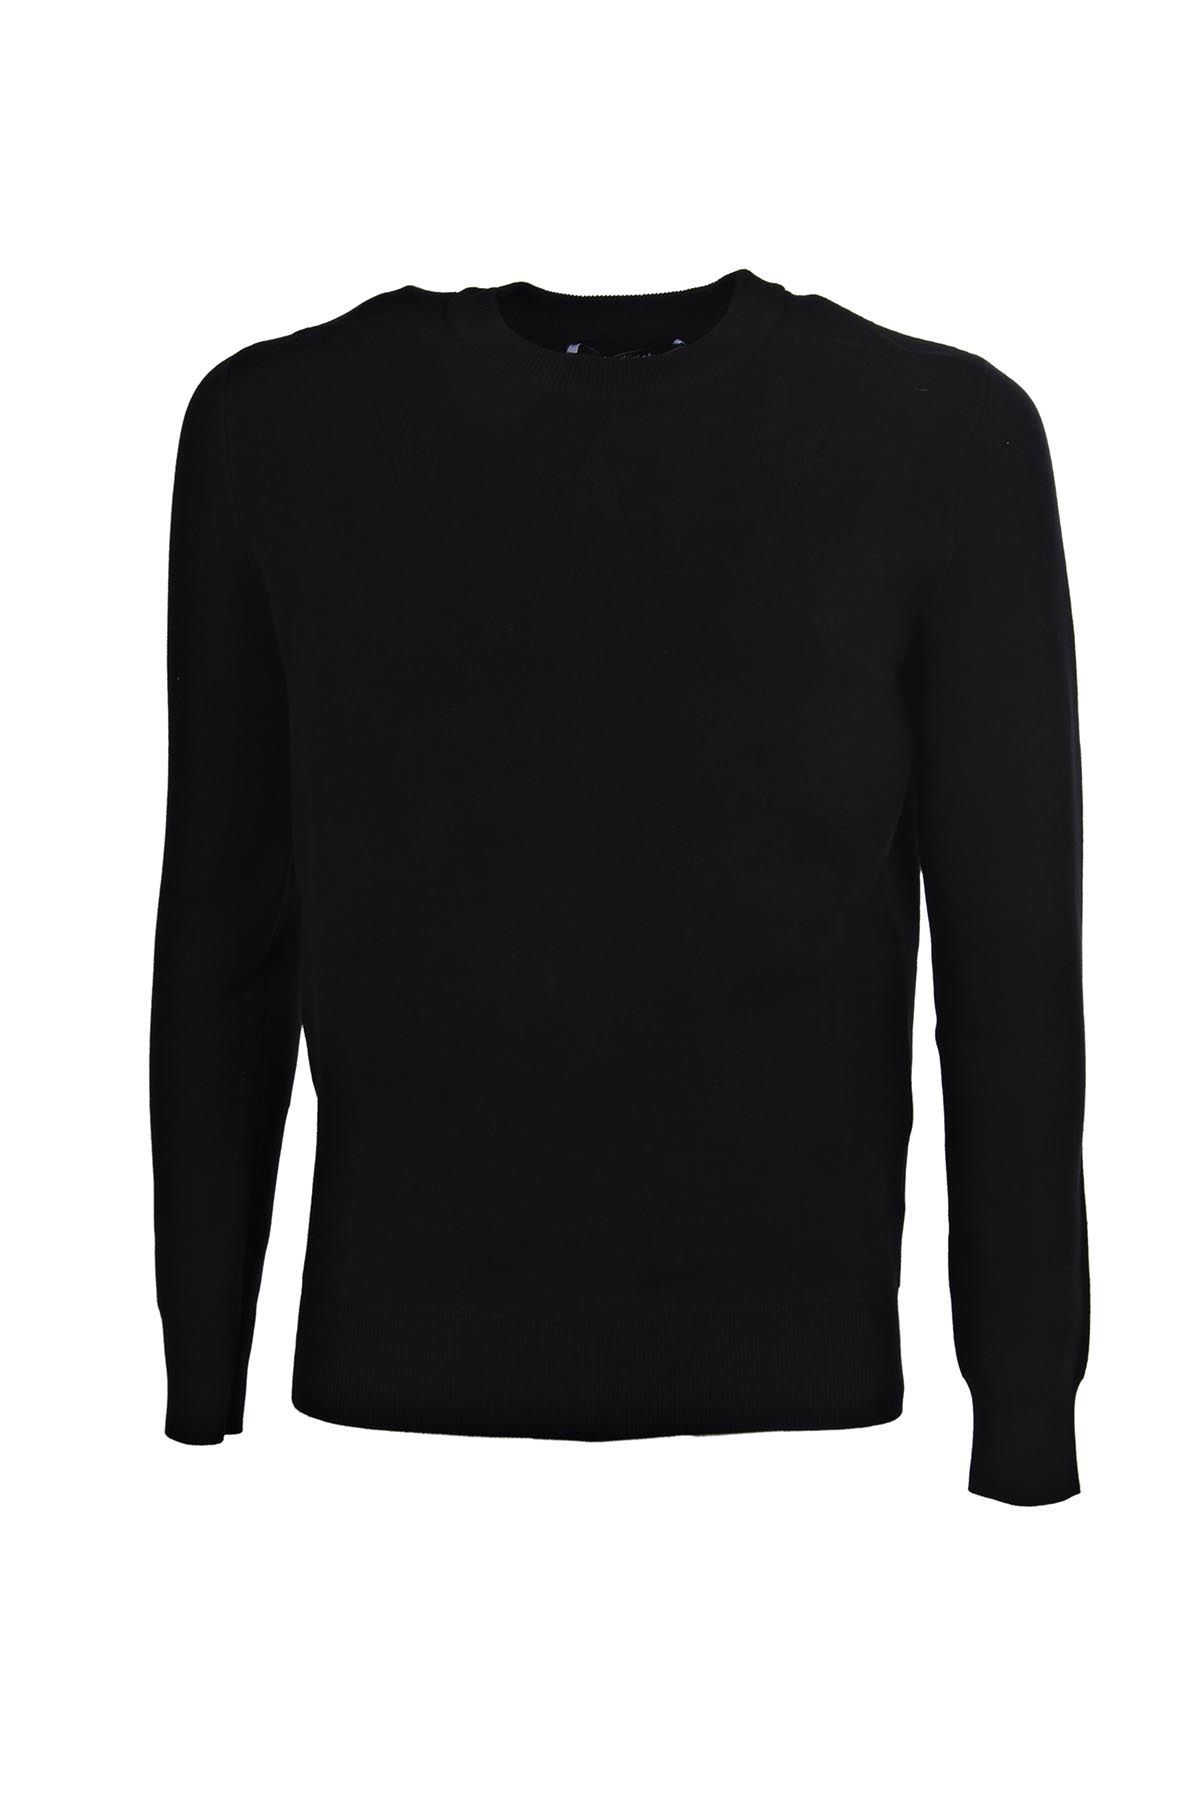 Givenchy Classic Knitted Sweater